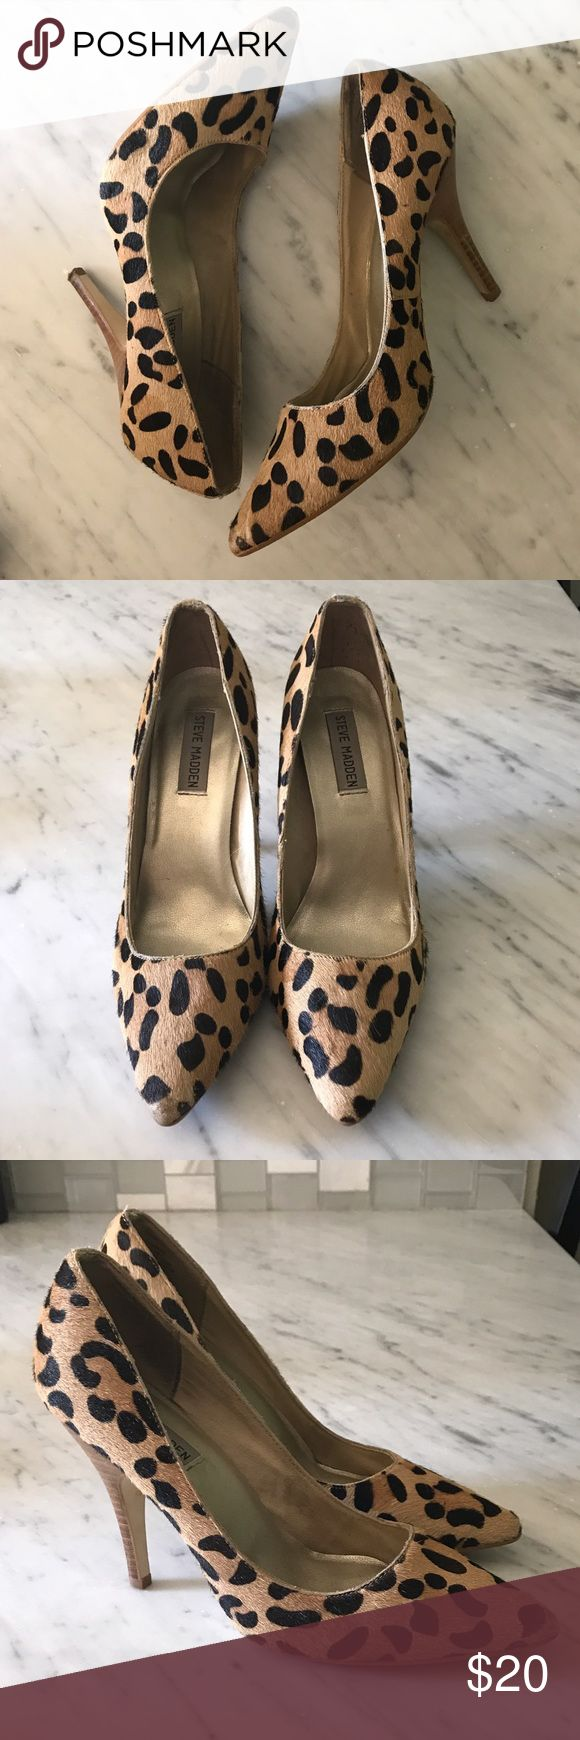 Steve Madden 'Carmin' Calf-Hair Leopard Print Pump Steve Madden 'Carmin' Calf-Hair Leopard Print Pump. Pointed Toe; wooden heel. Please note a little wear on the pointed toe, and a knick on the back of one of the heels. Steve Madden Shoes Heels